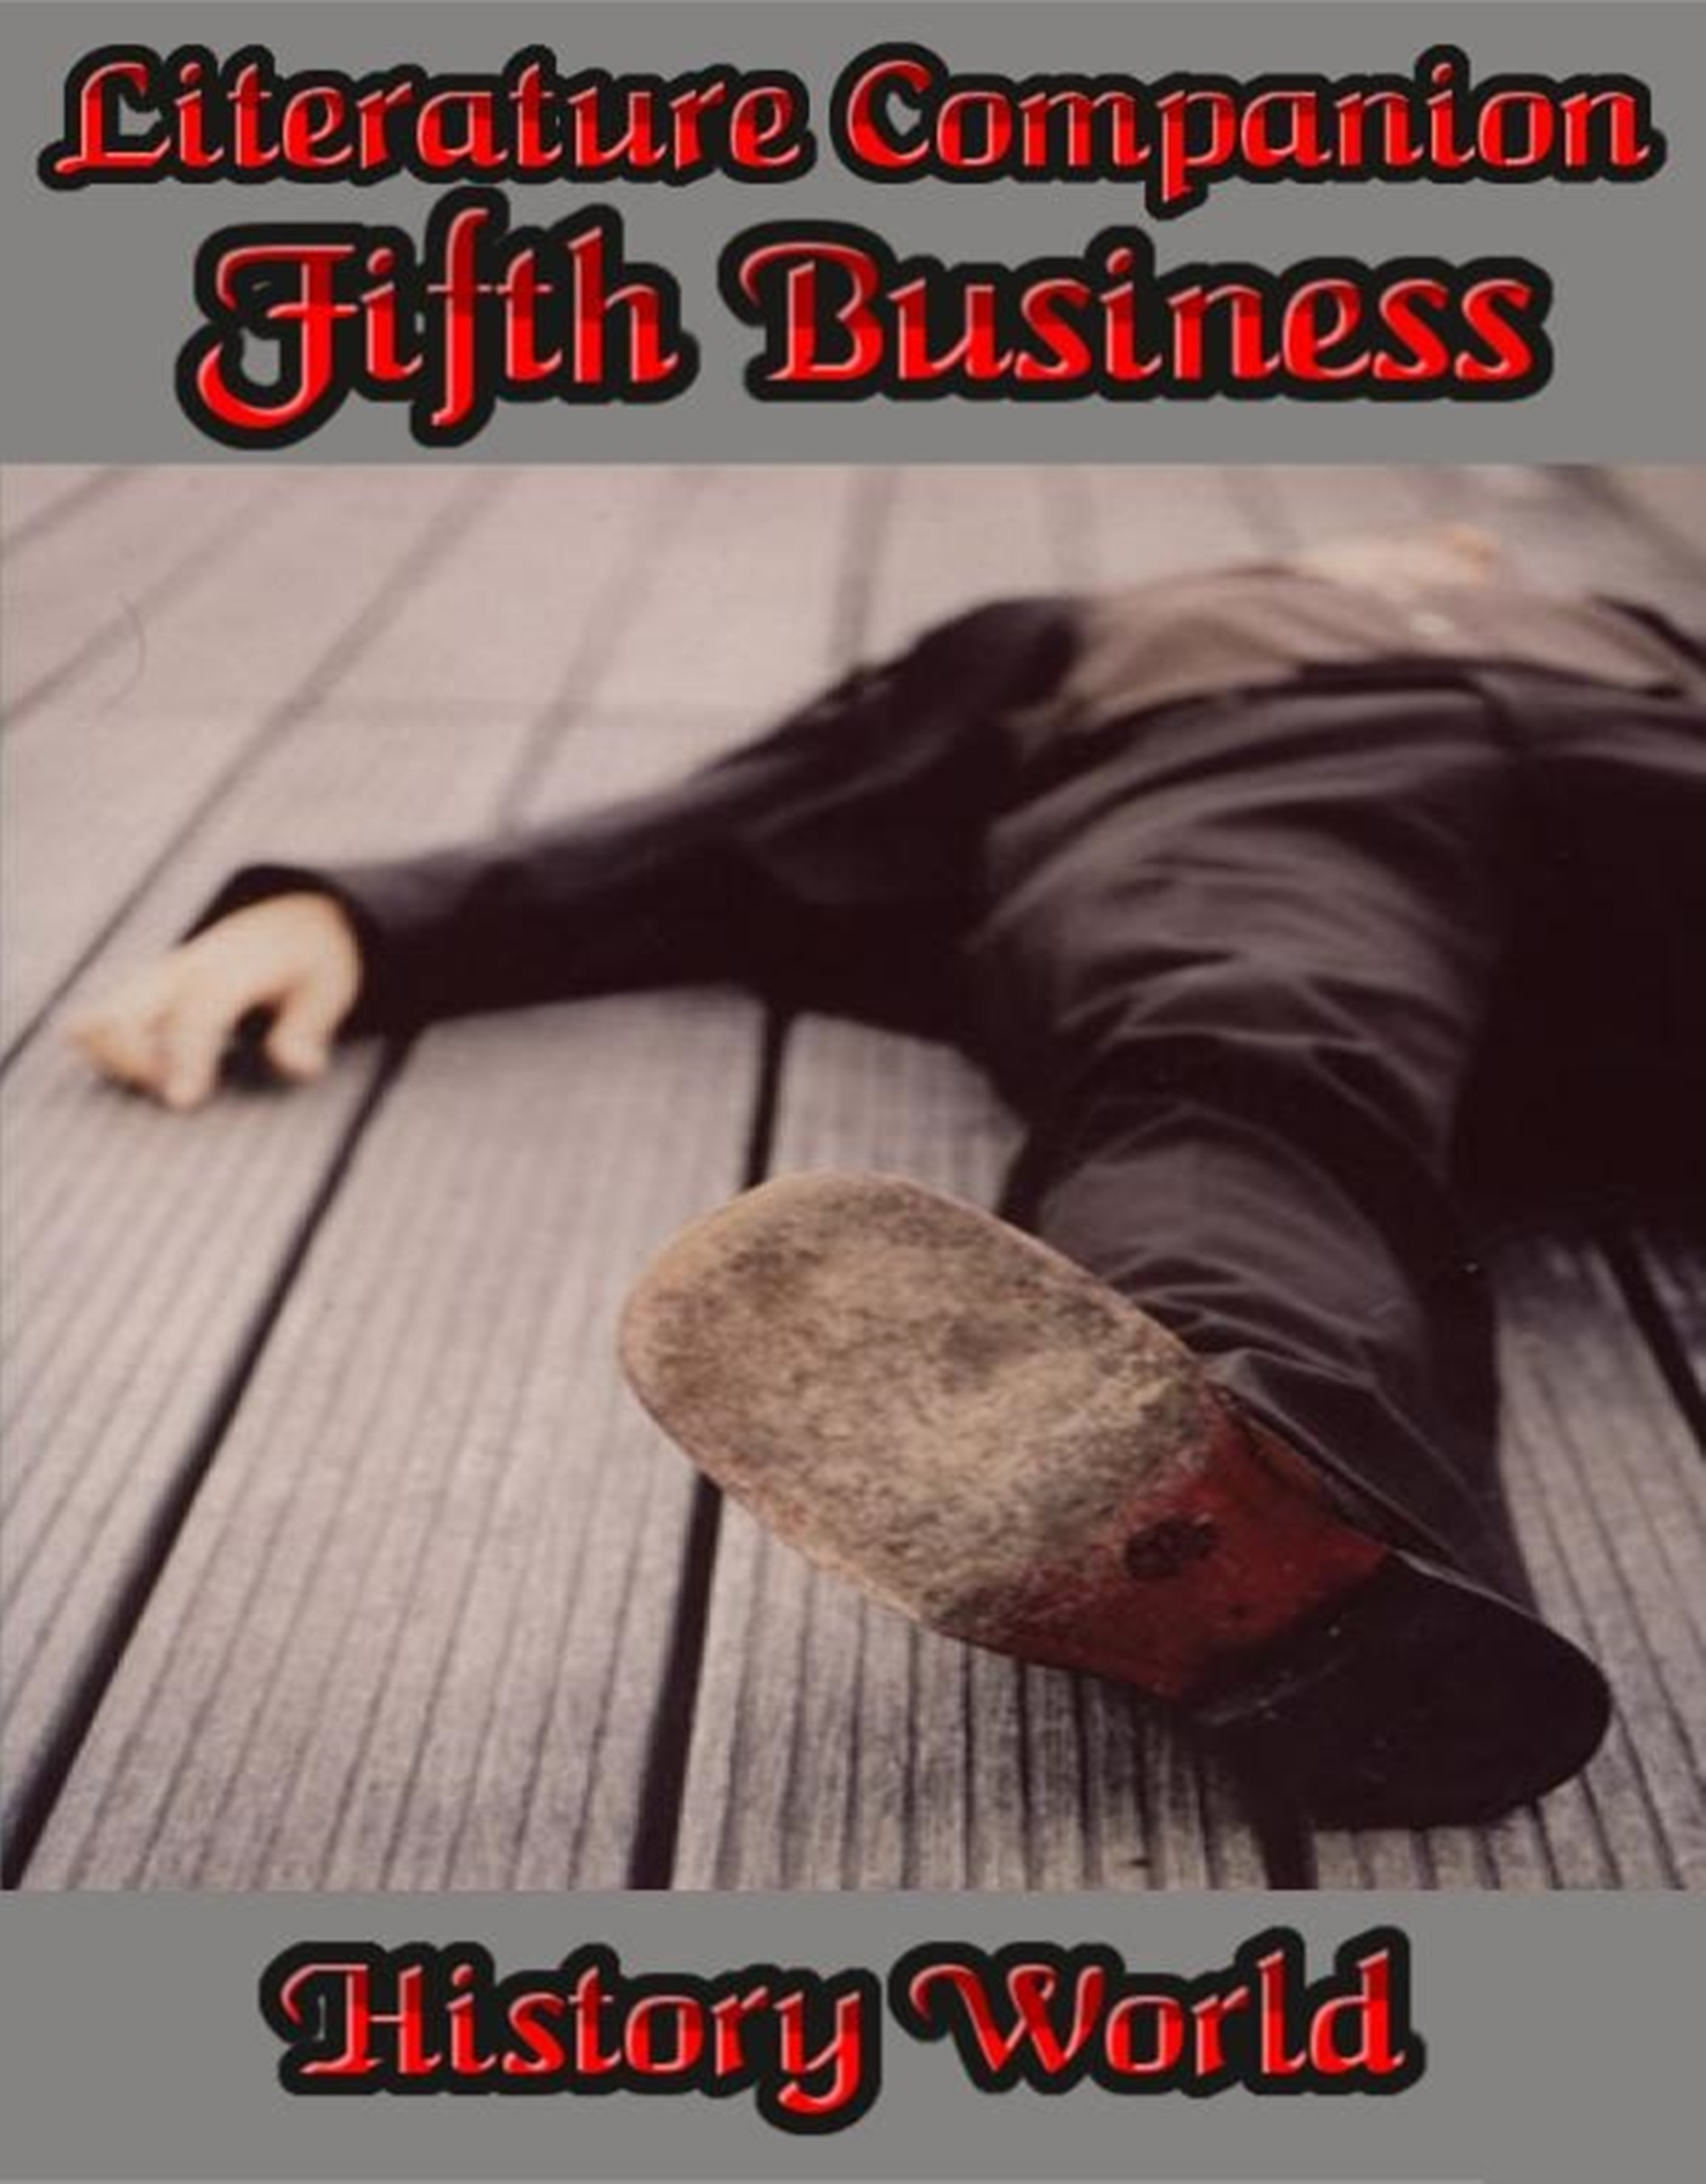 an analysis of the novel fifth business by robertson davies